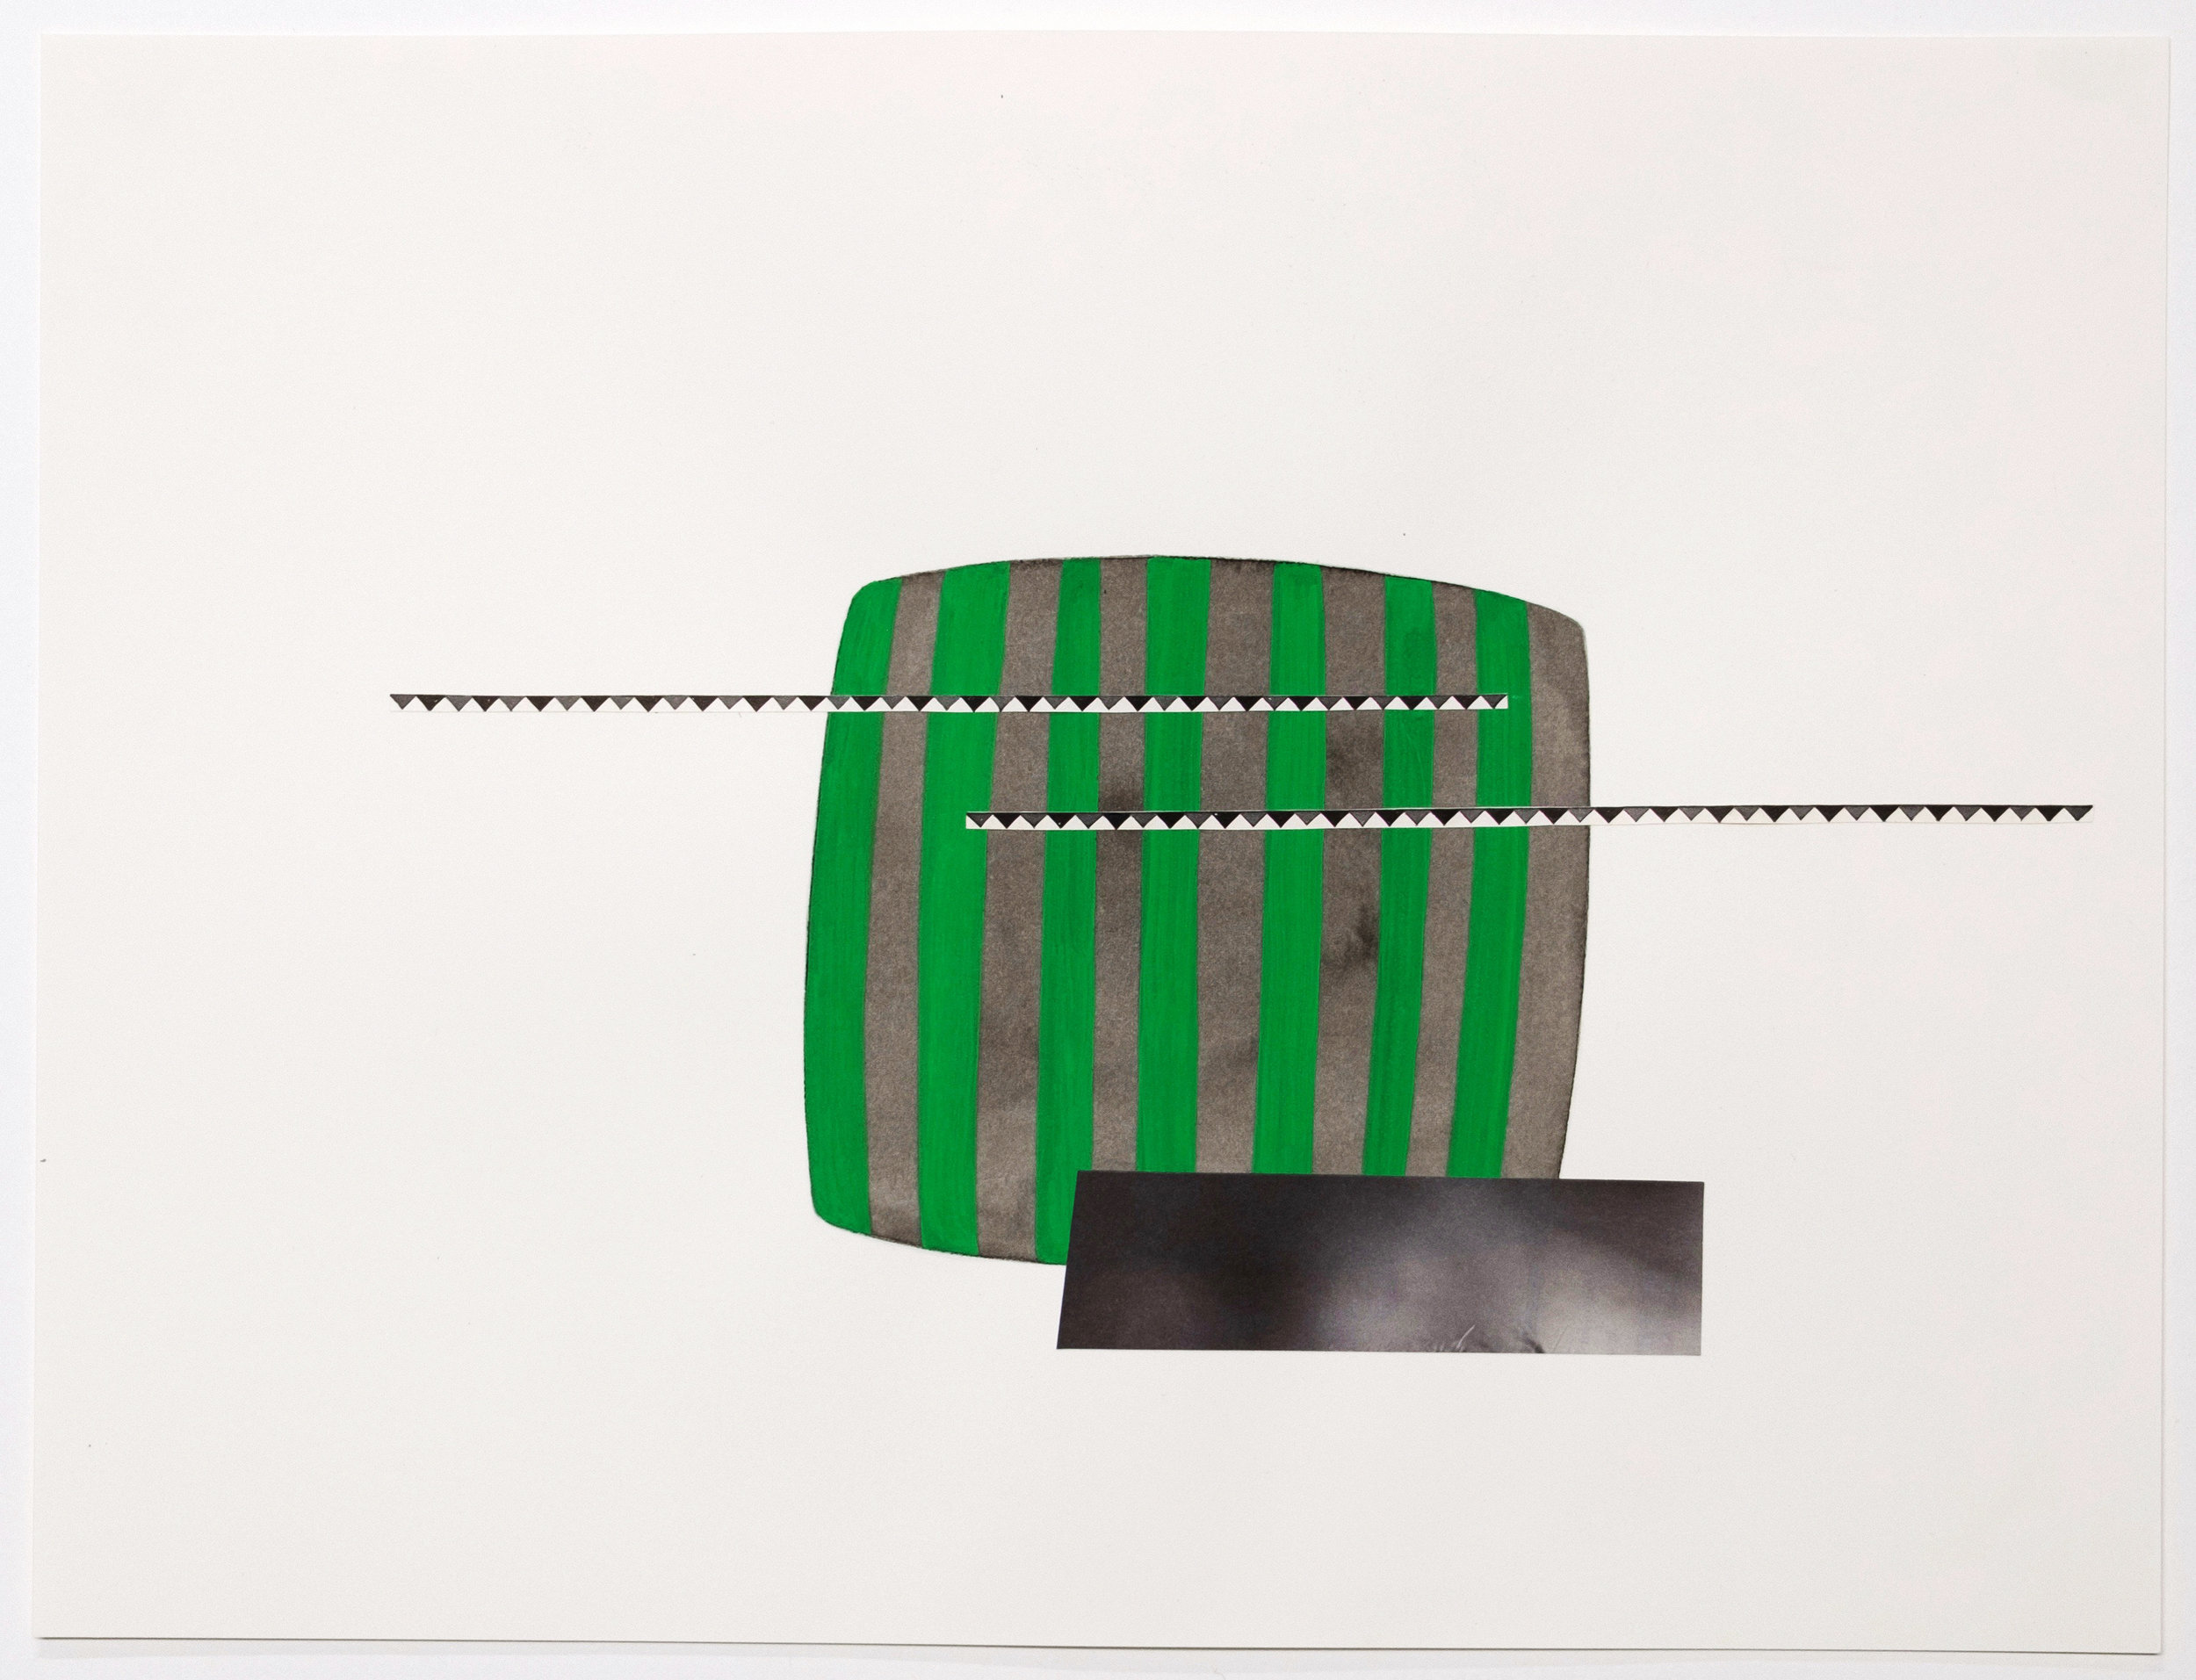 Untitled (no. 24), 2013, ink, gouache, collage on paper, 12 x 16""